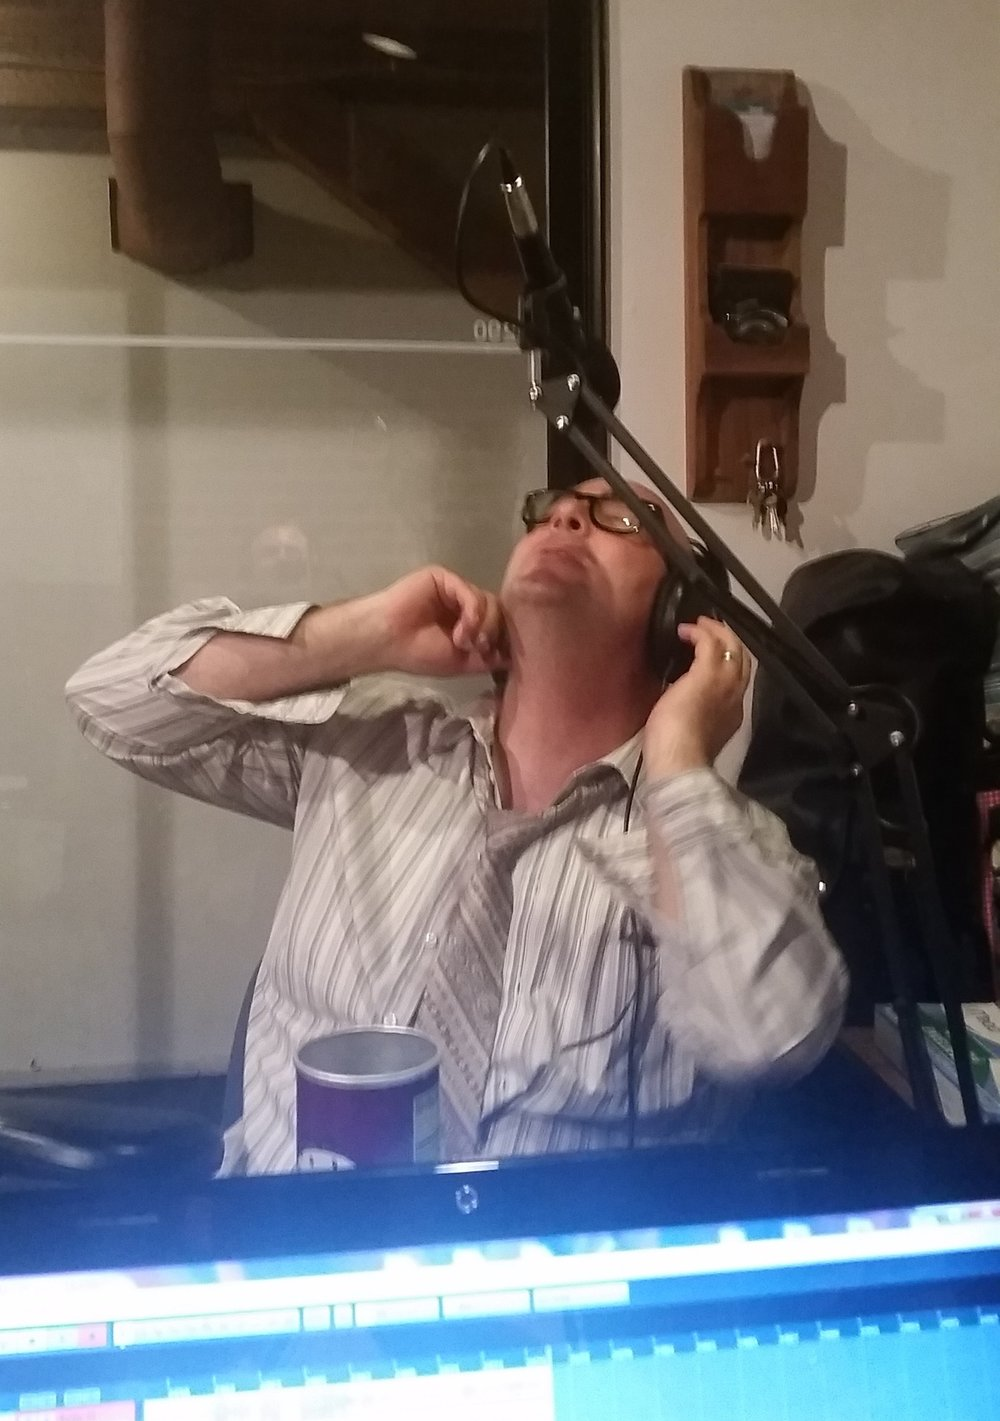 Chadwick Habersnatch. Feelin' the flow. Workin' it...Workin' it.    1:01:07 Writer/Editor: SK Morton CoHost: Pete Feliciano Producer/Sound Engineer: Squidge McSqueezy Guests: KS Notrom & Chadwick Habersnatch